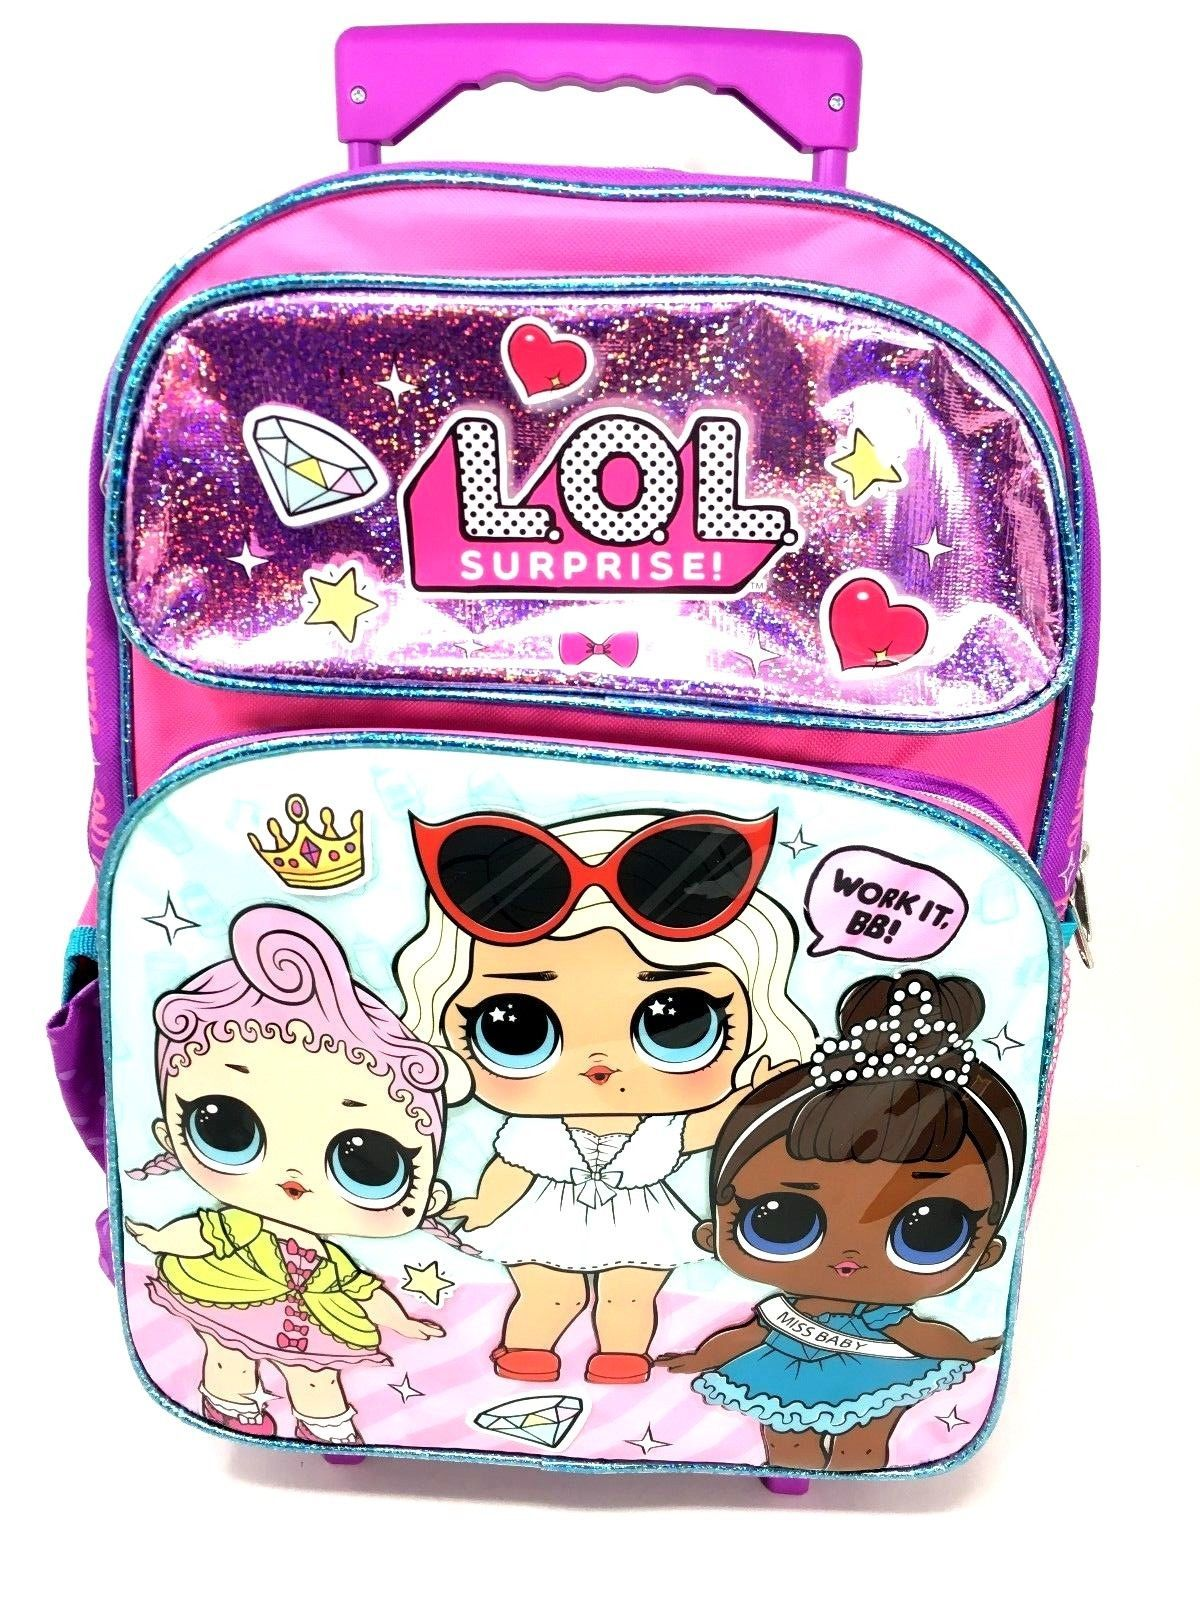 ca21d85eca L.O.L Surprise! Large School Rolling Backpack 16